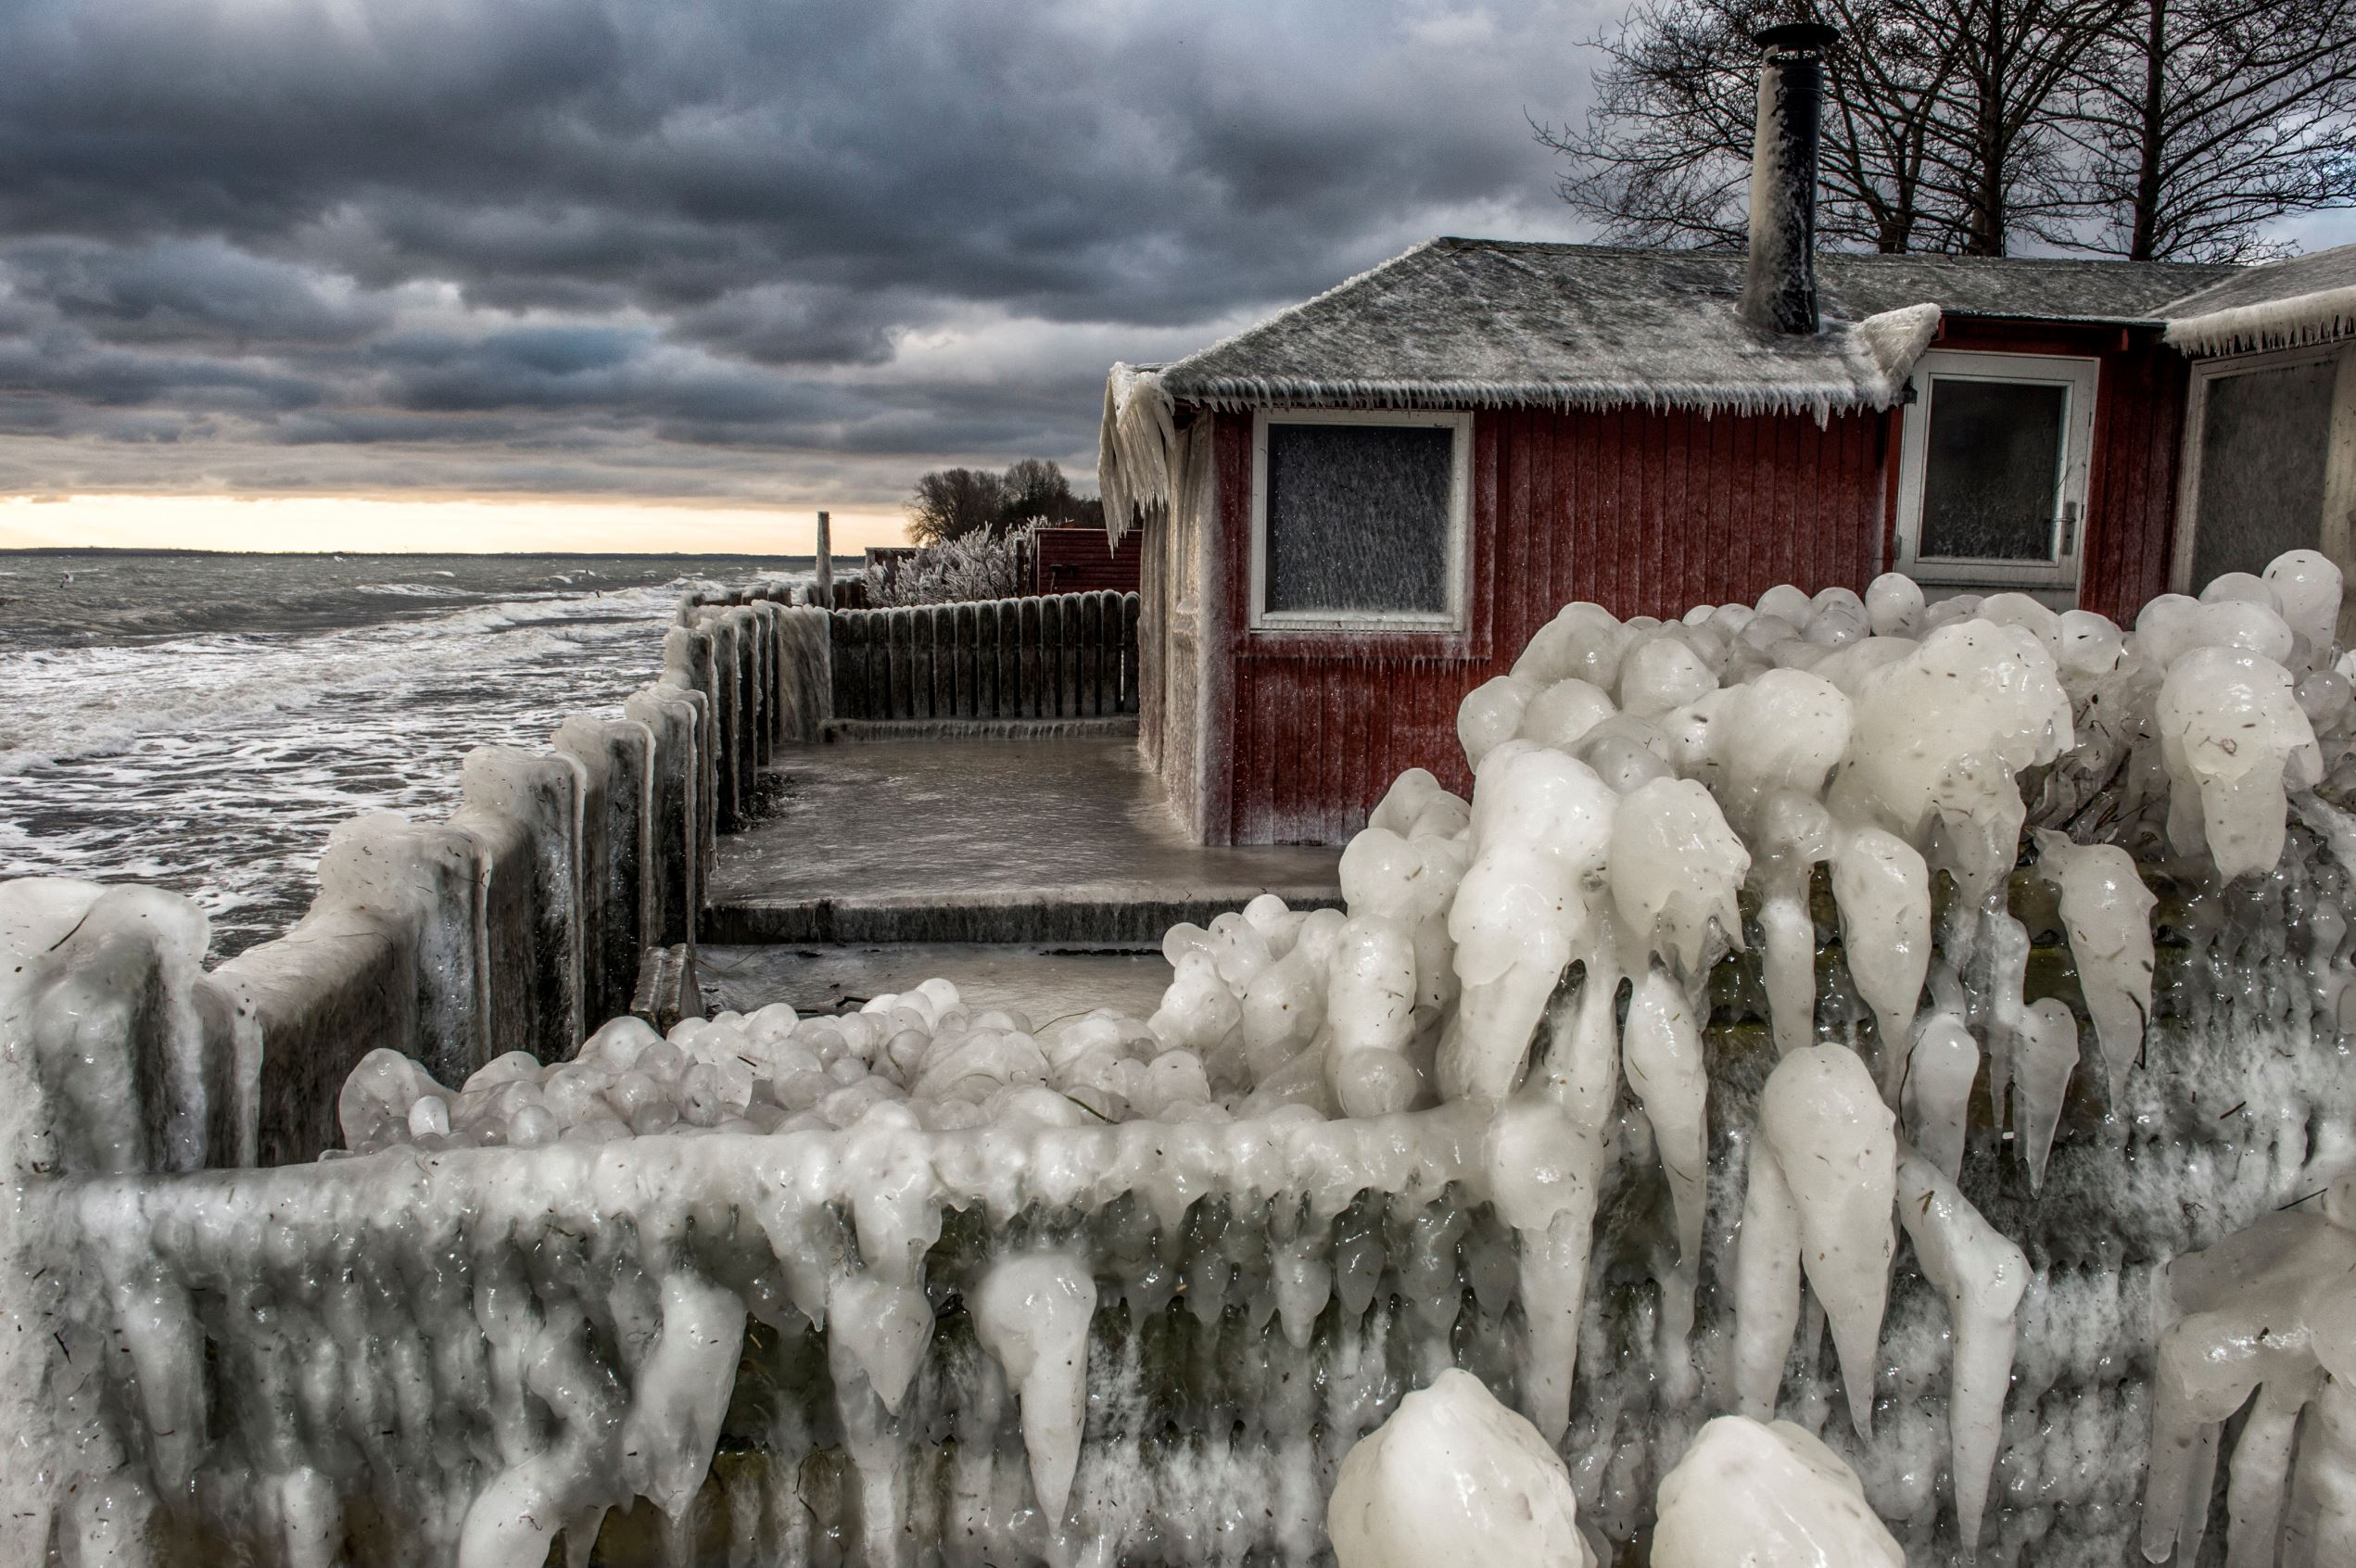 Слайд 3 из 86: Ice formations are seen at the beach near Fakse Ladeplads, south of Copenhagen, Denmark, Tuesday Jan. 5. 2016. Daytime temperatures in the area were between zero and minus four degrees Celcius. (Per Rasmussen/Polfoto via AP) DENMARK OUT